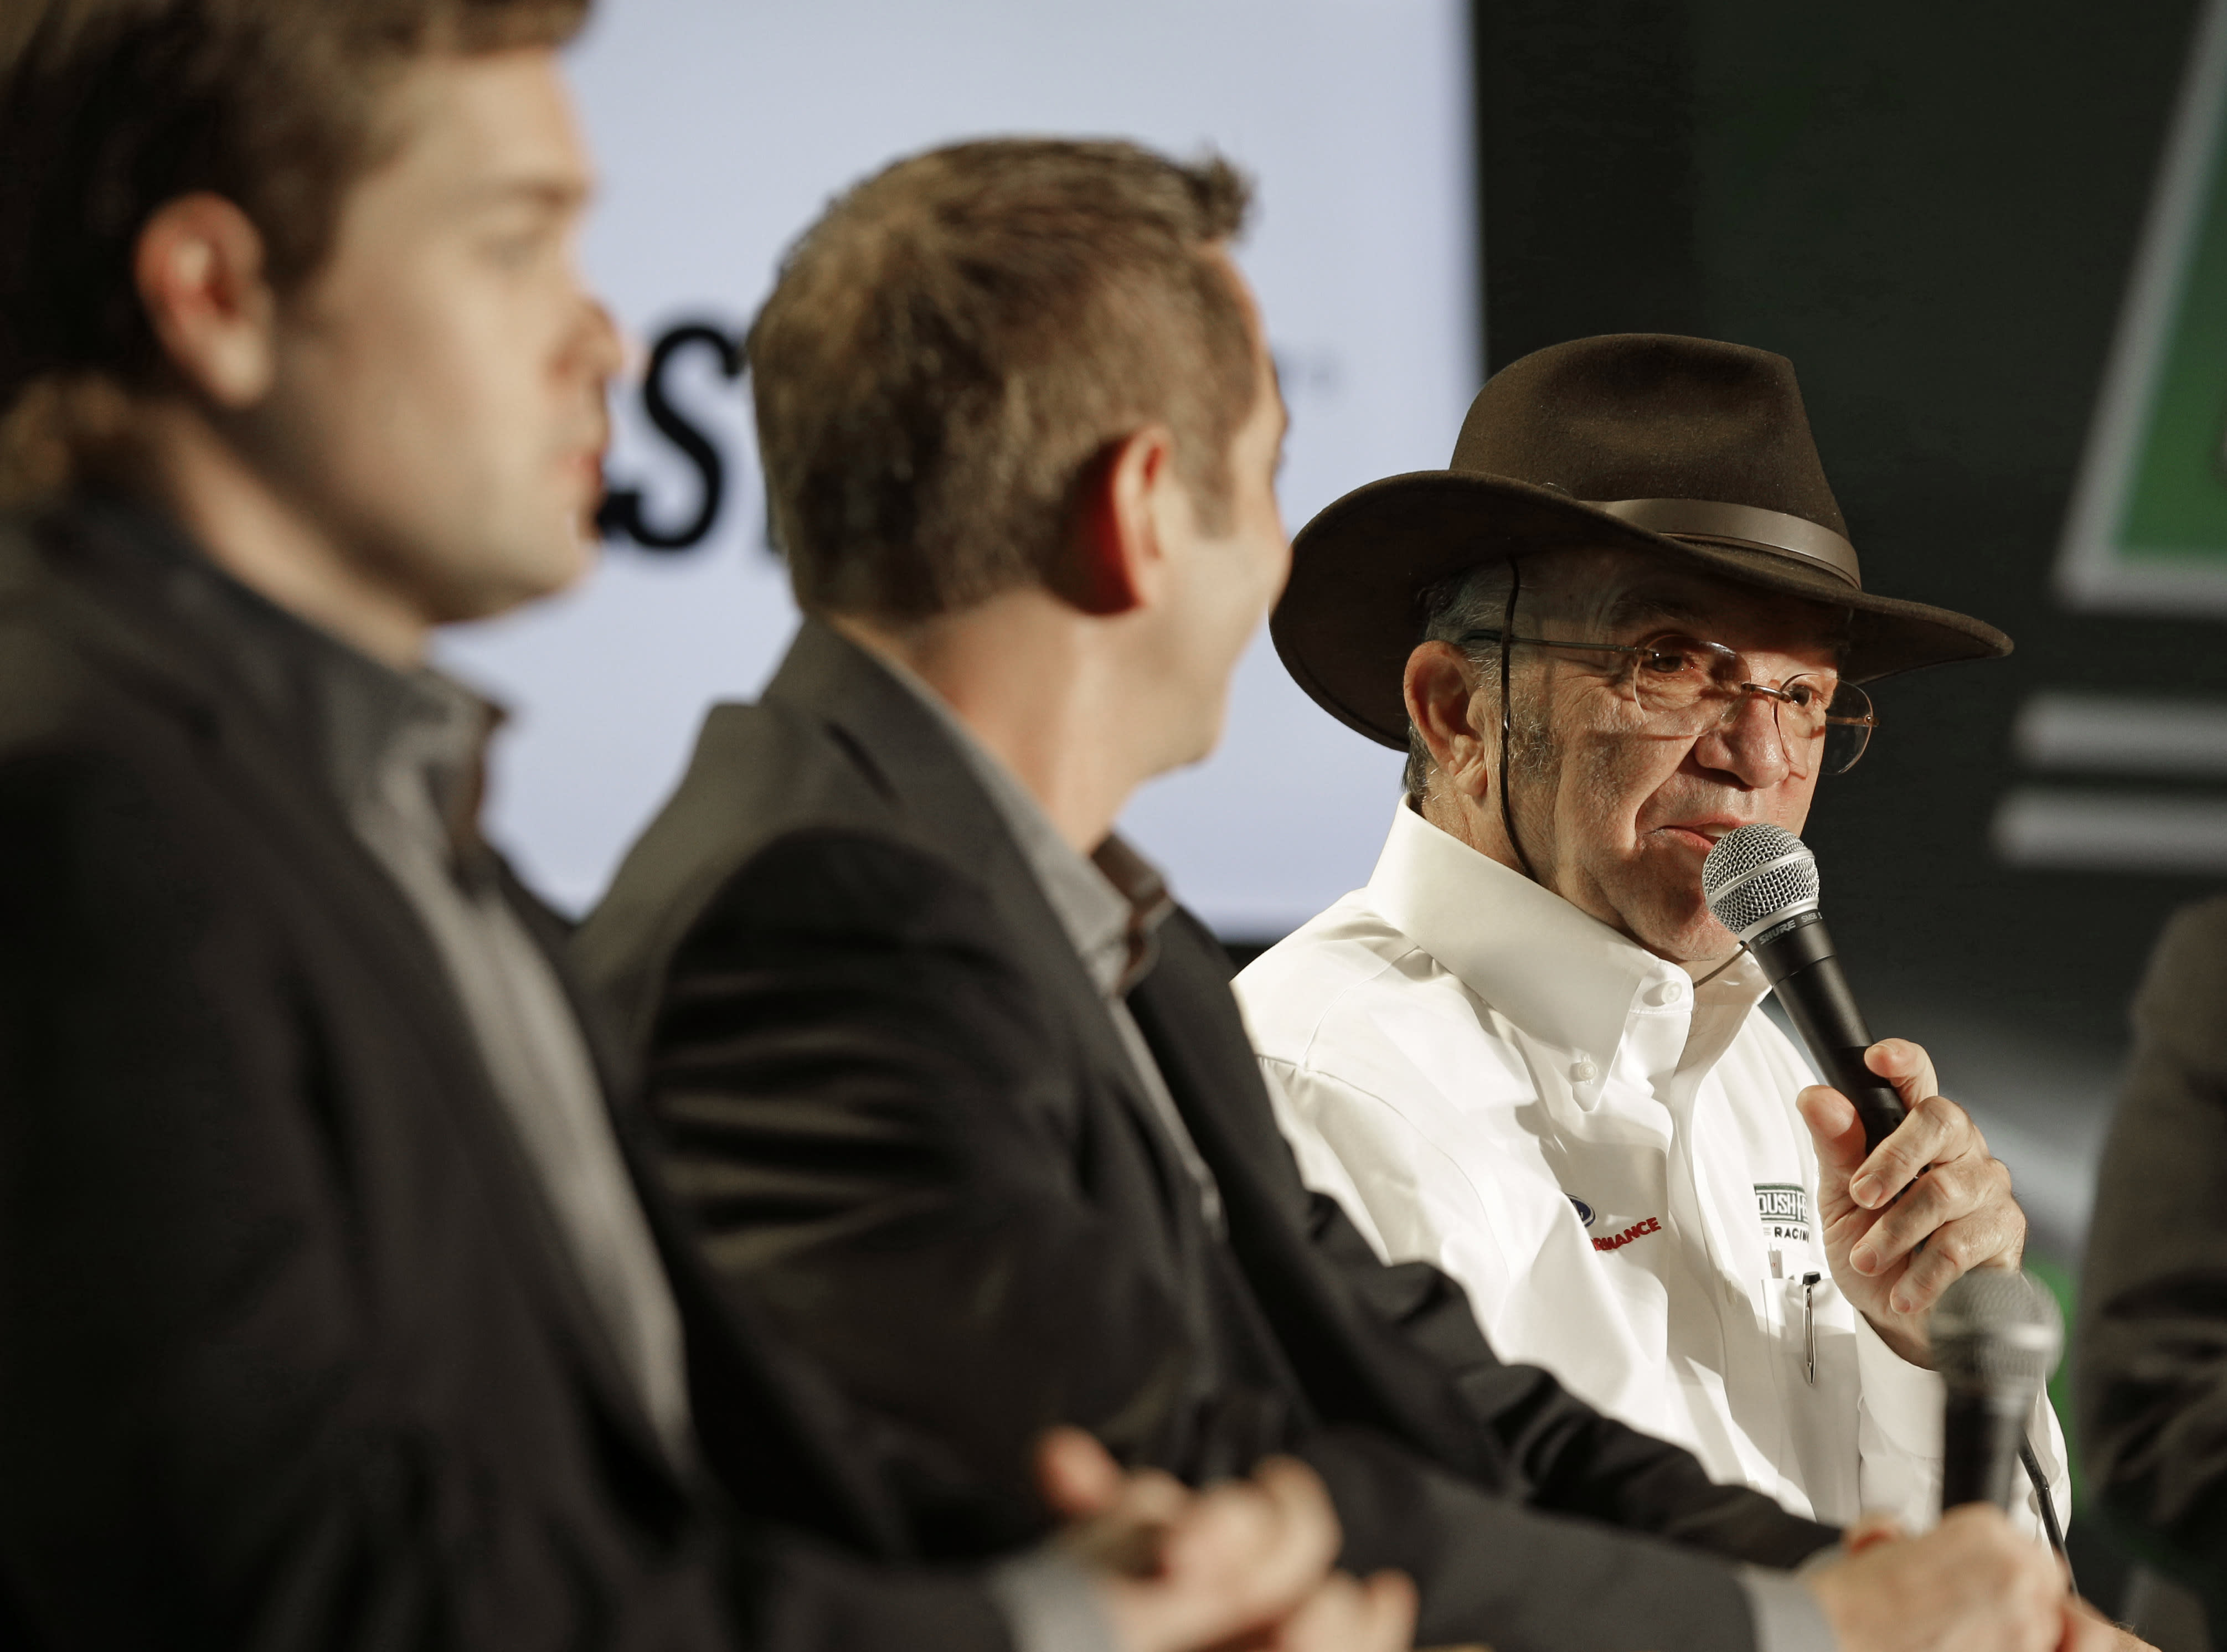 Media Tour Day 3: Roush vows to improve in 2015